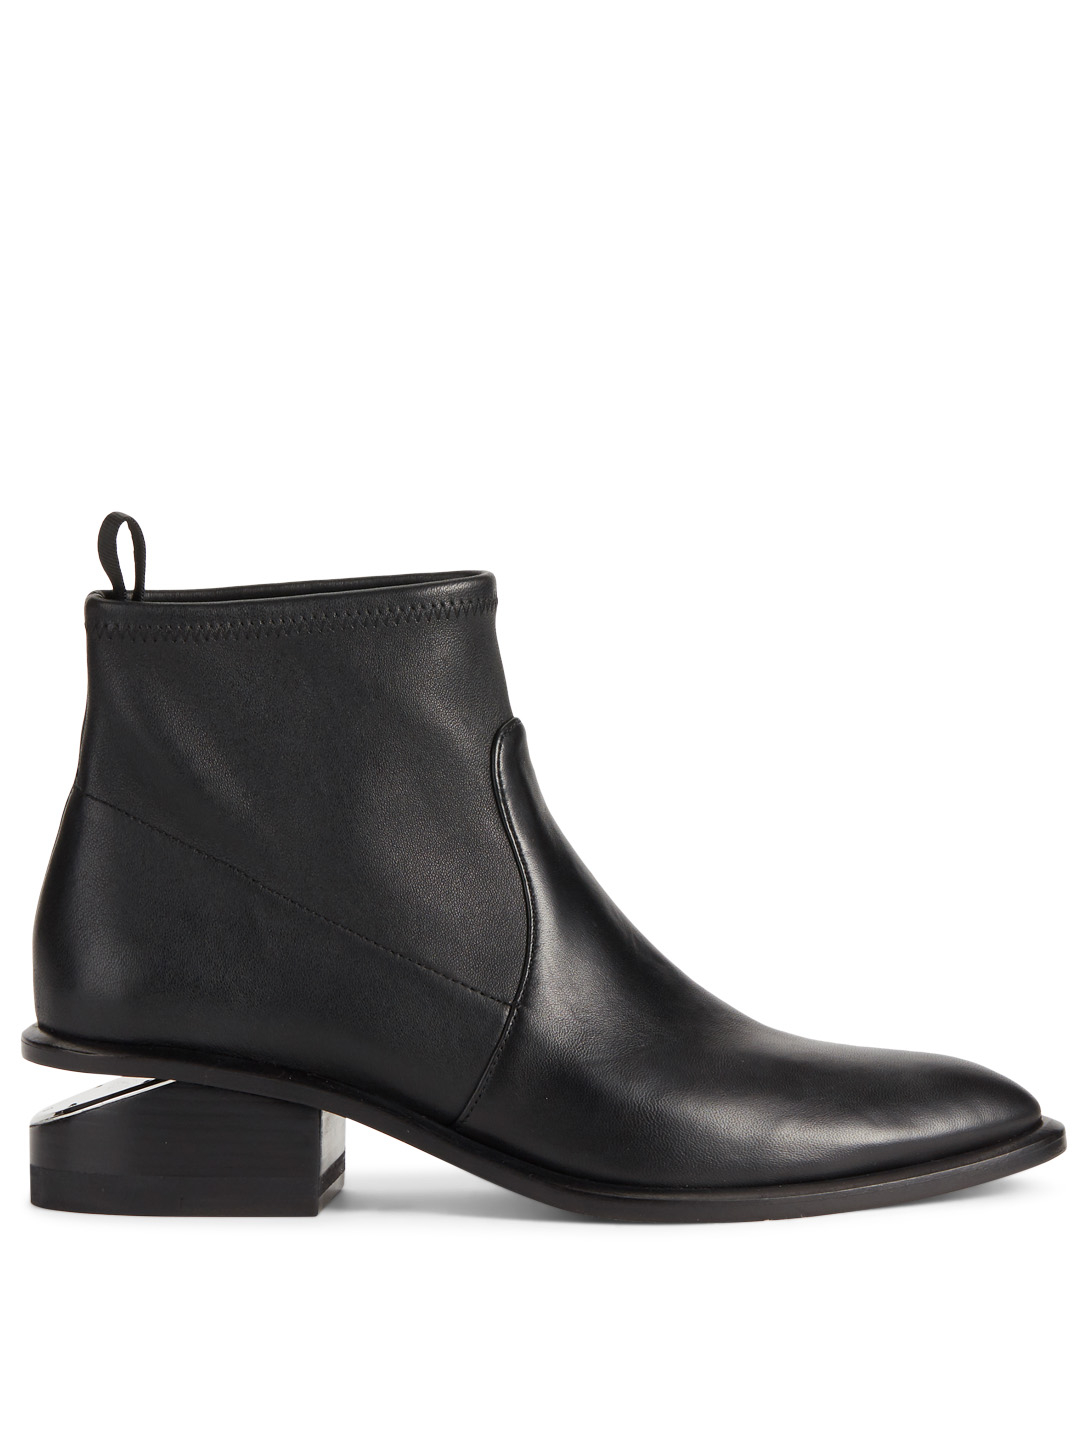 3b49314f03661d ALEXANDER WANG Kori Stretch Leather Ankle Boots